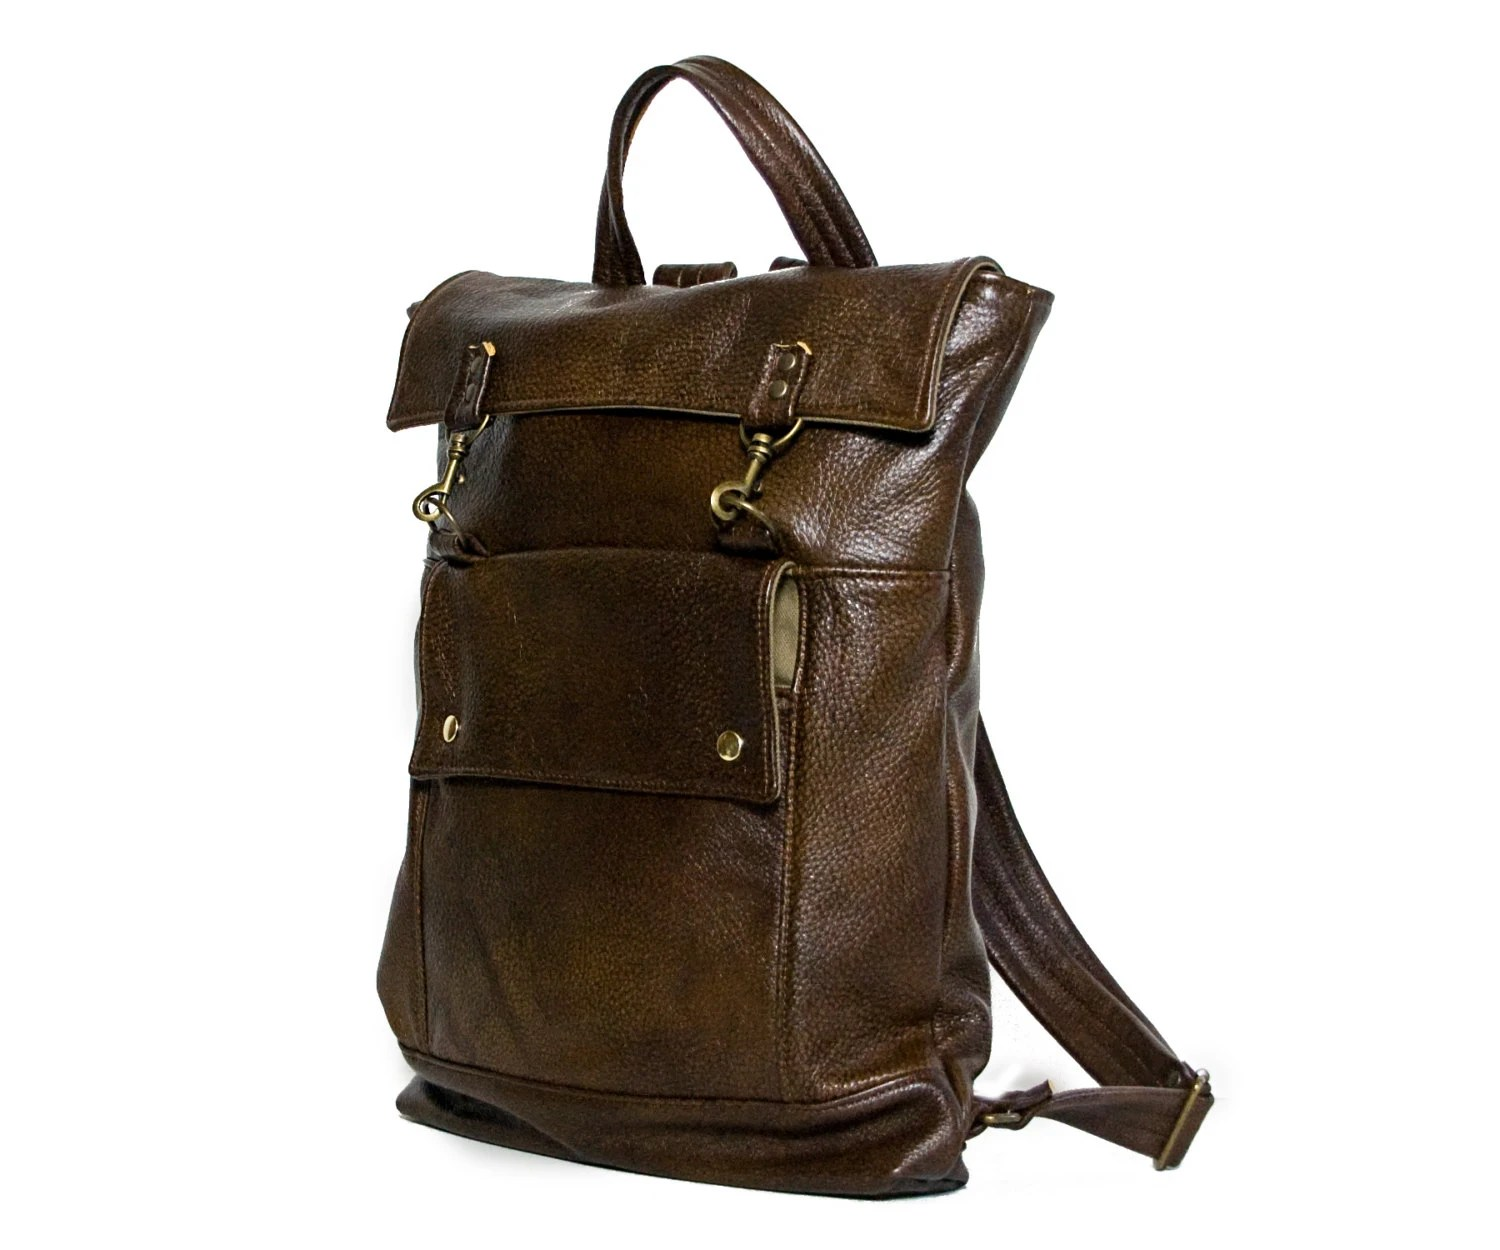 Leather Backpack - Laptop Backpack in Aztec Trail Multitone Brown Leather - Rucksack Bag - Back to School - Ready to Ship - jennyndesign